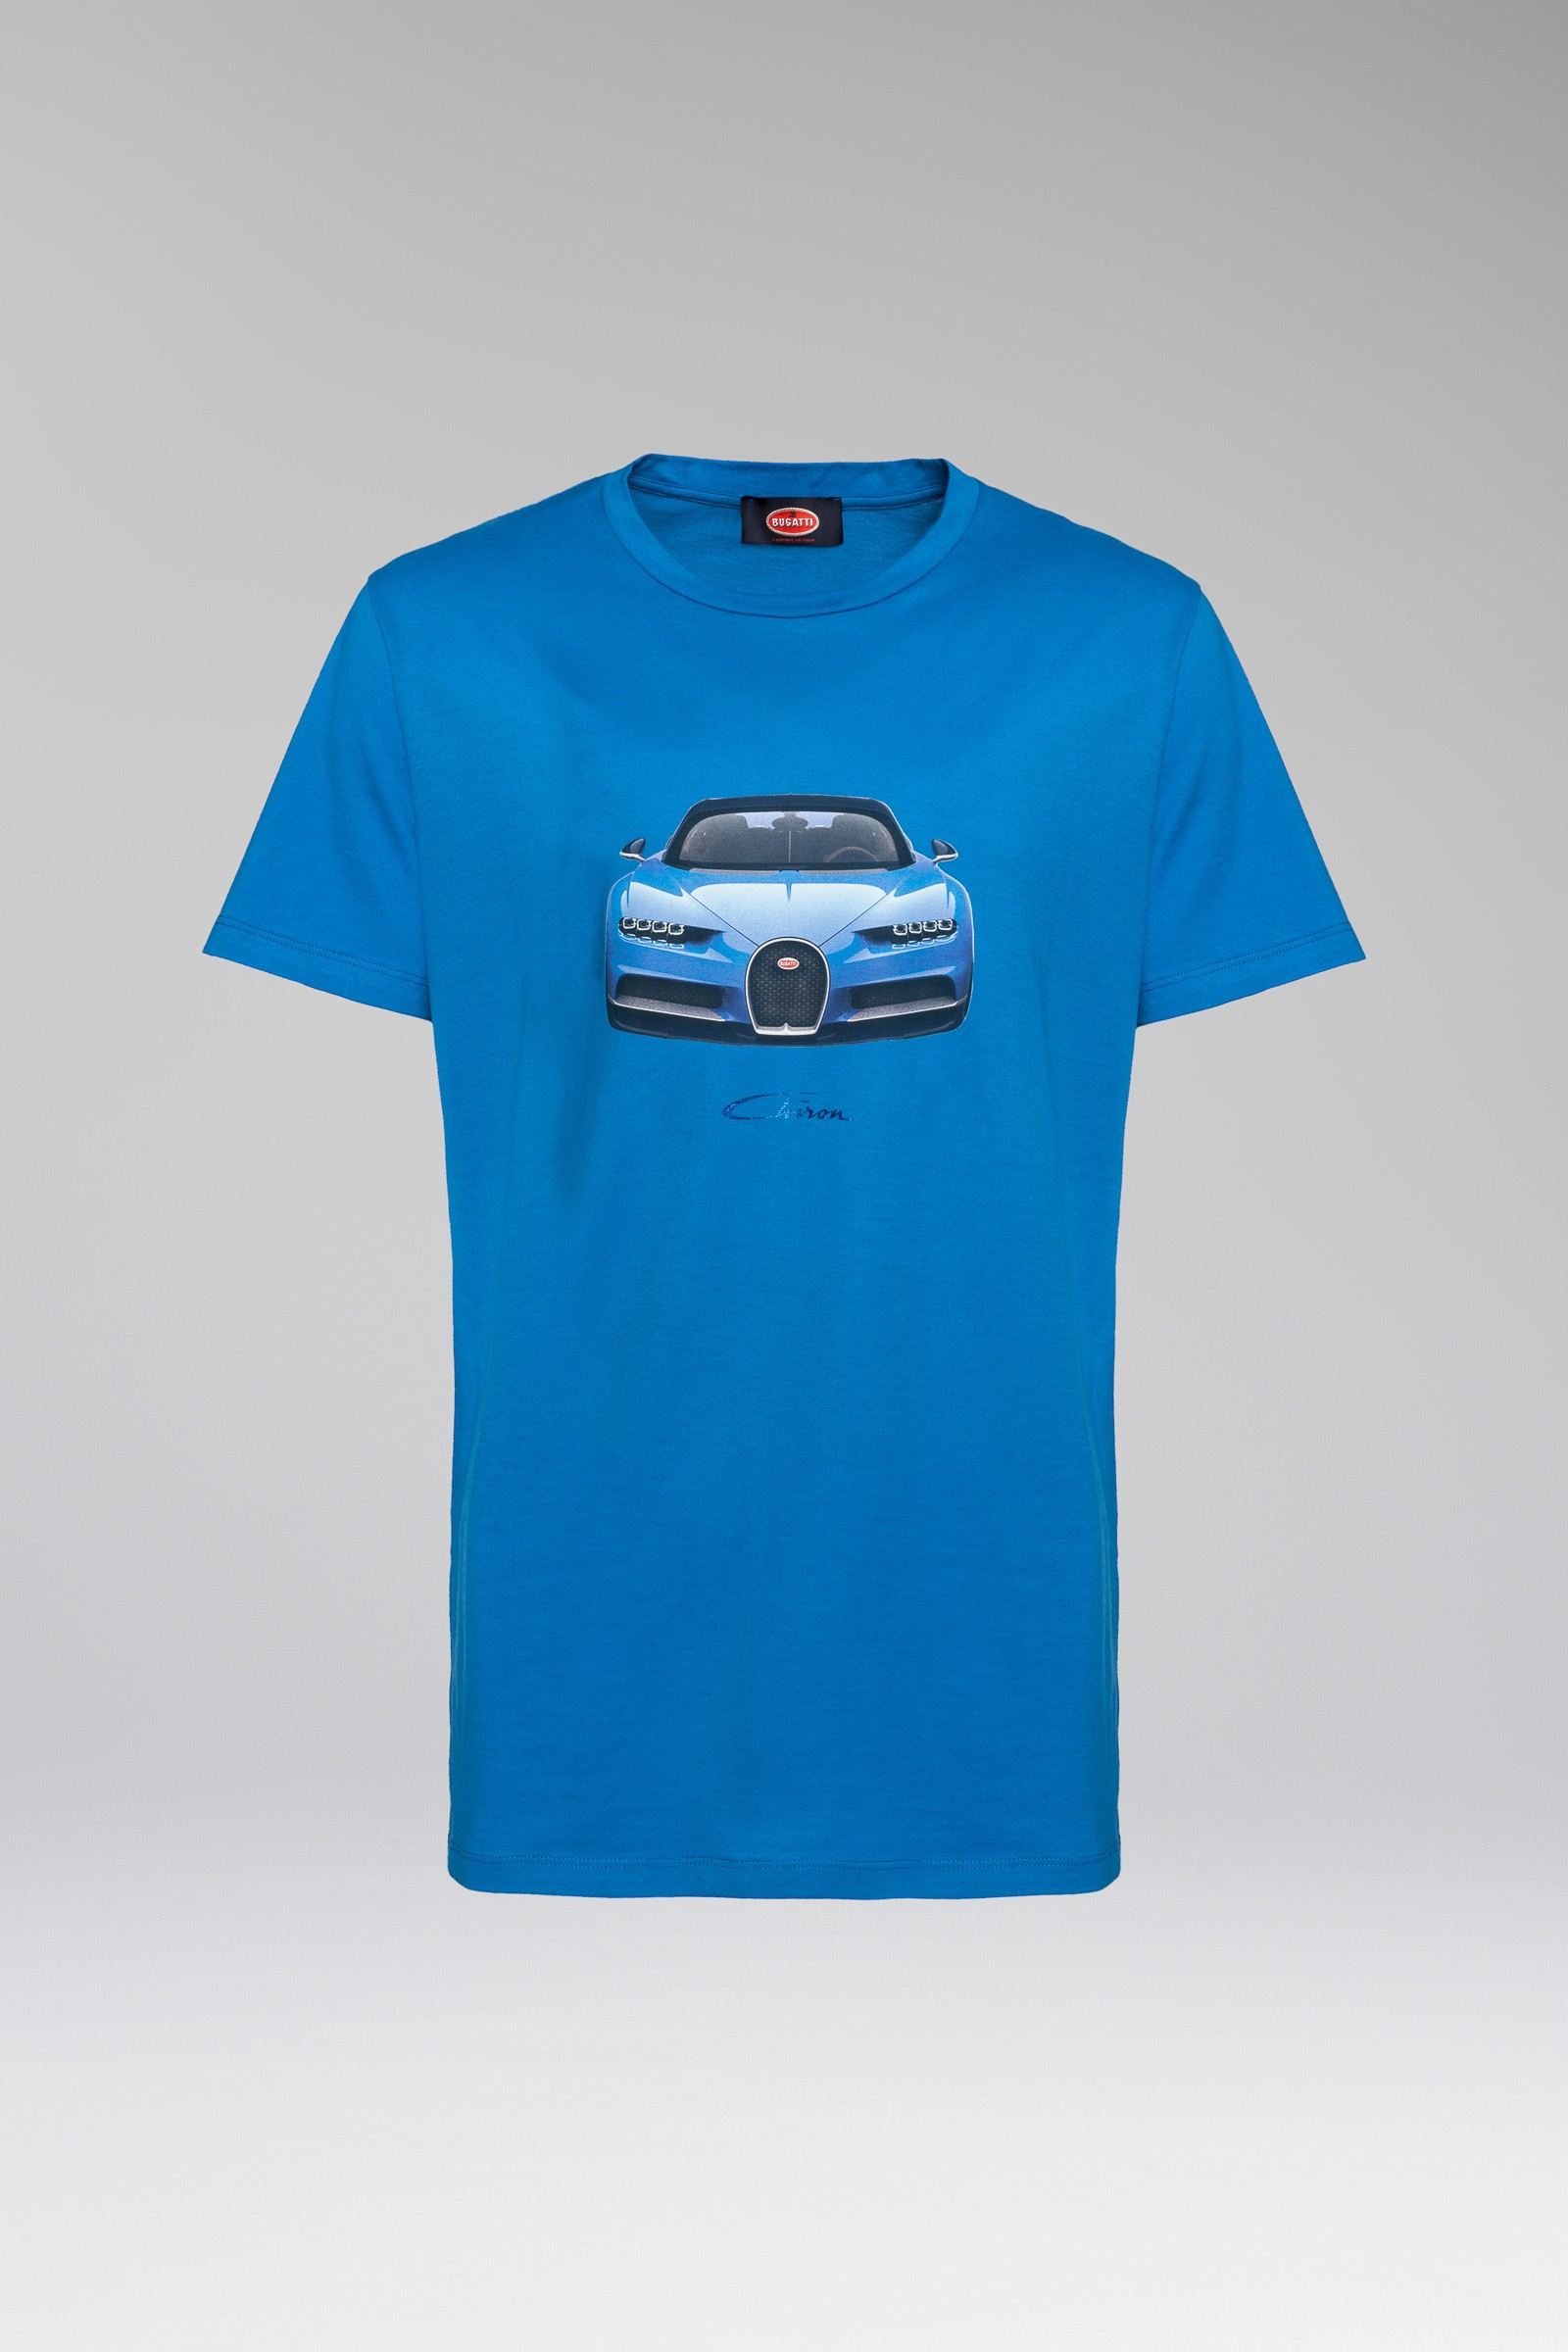 French racing blue chiron t shirt by bugatti choice gear for French blue t shirt